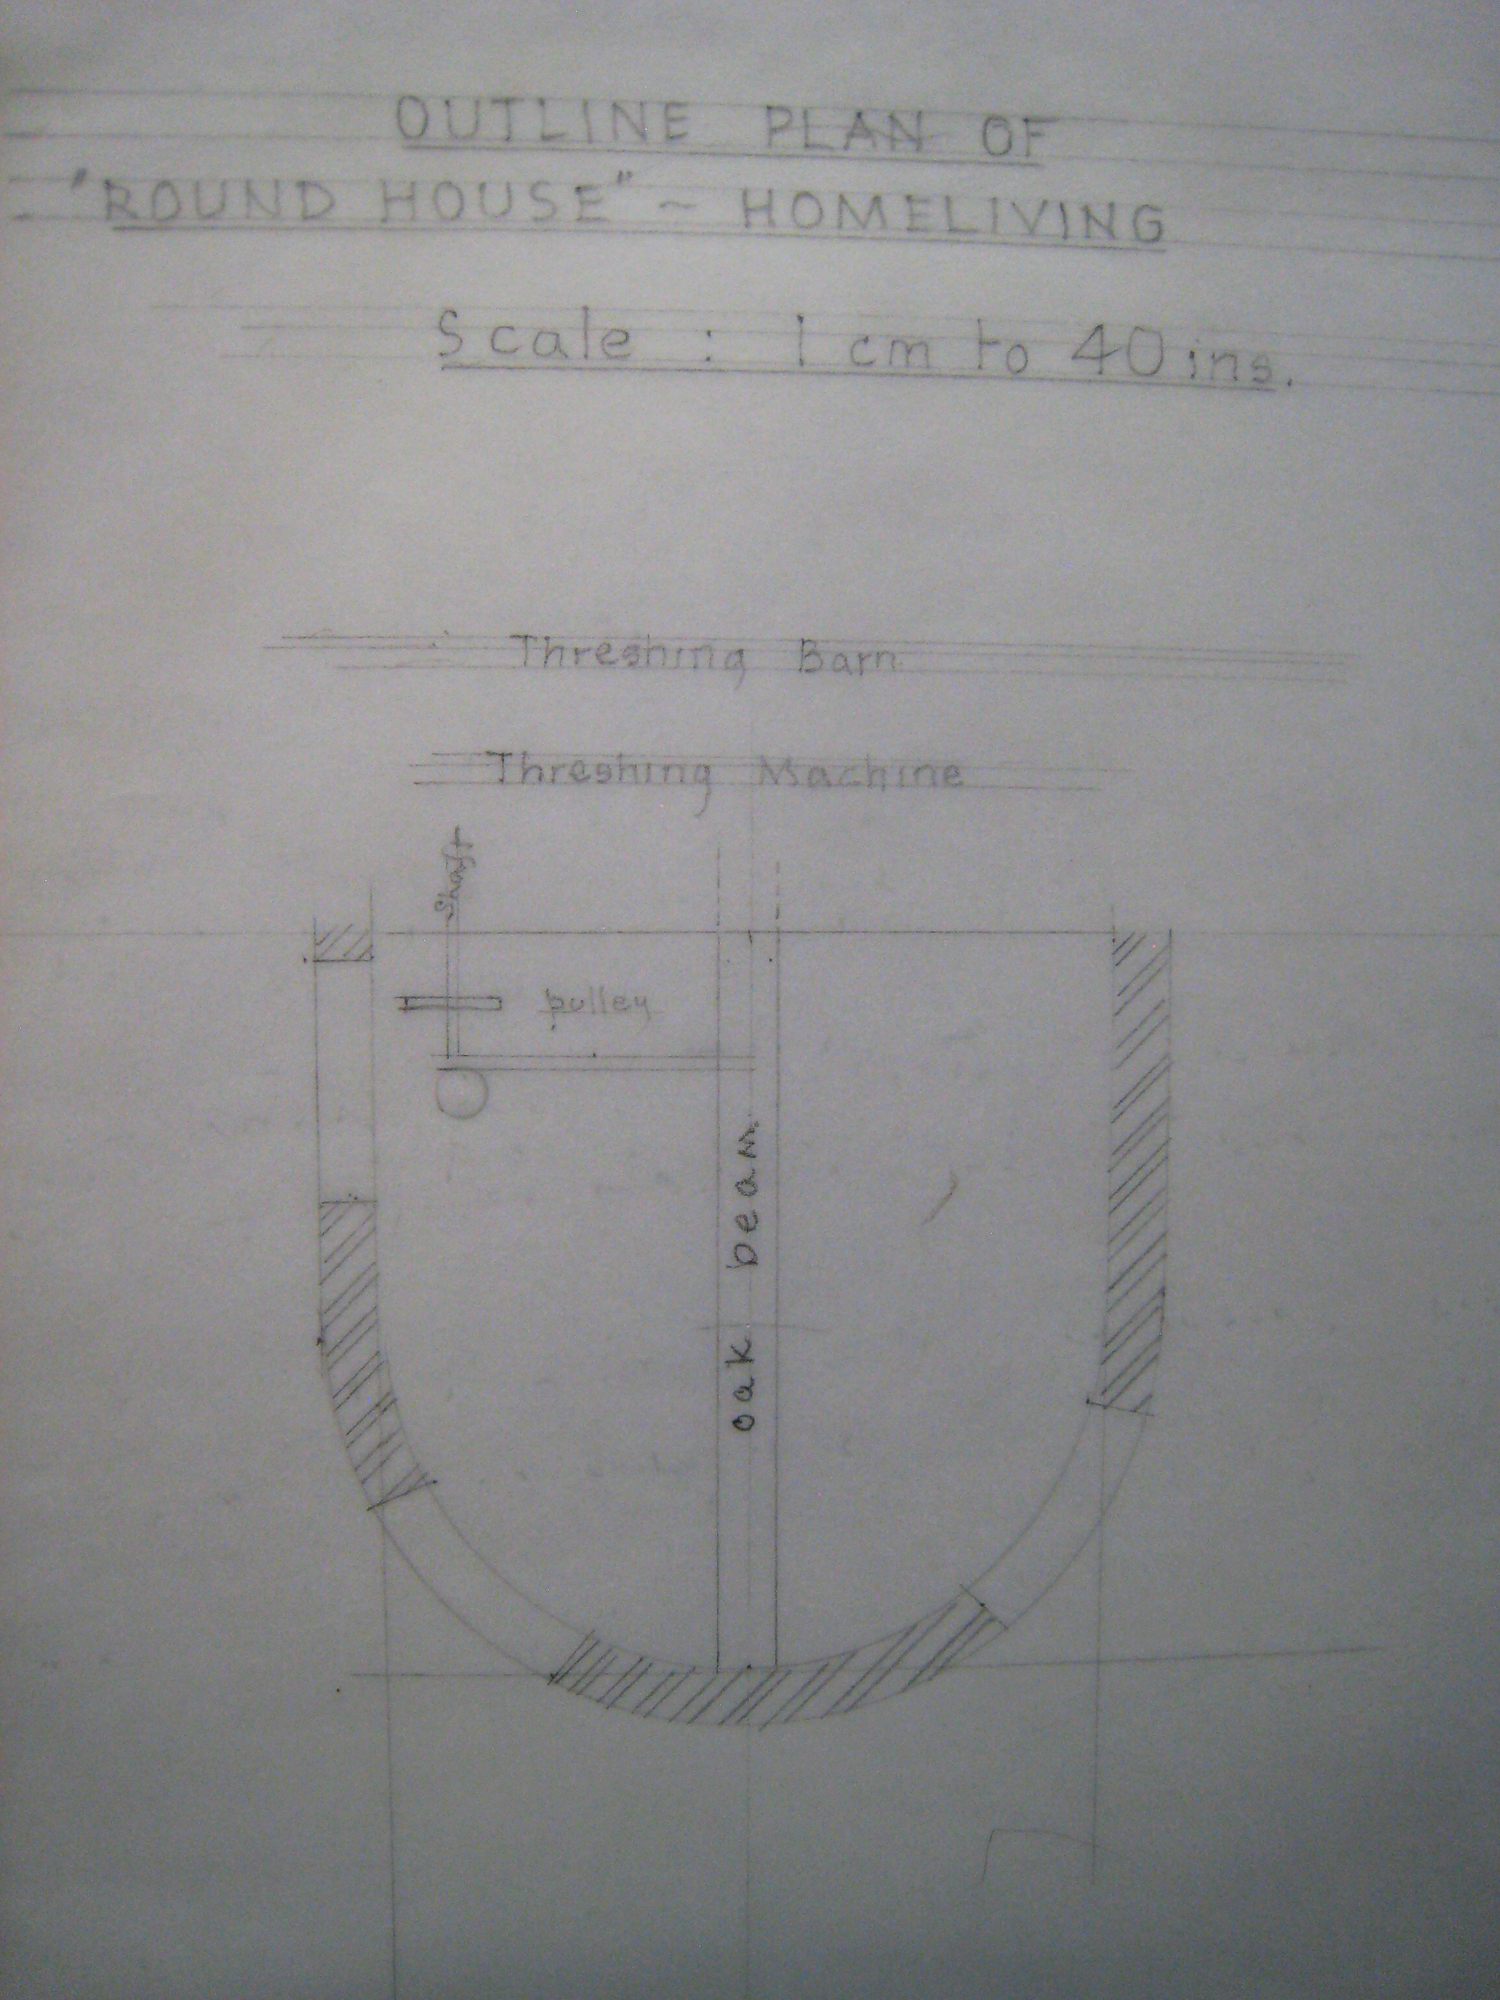 Homeliving: Roundhouse, outline plan